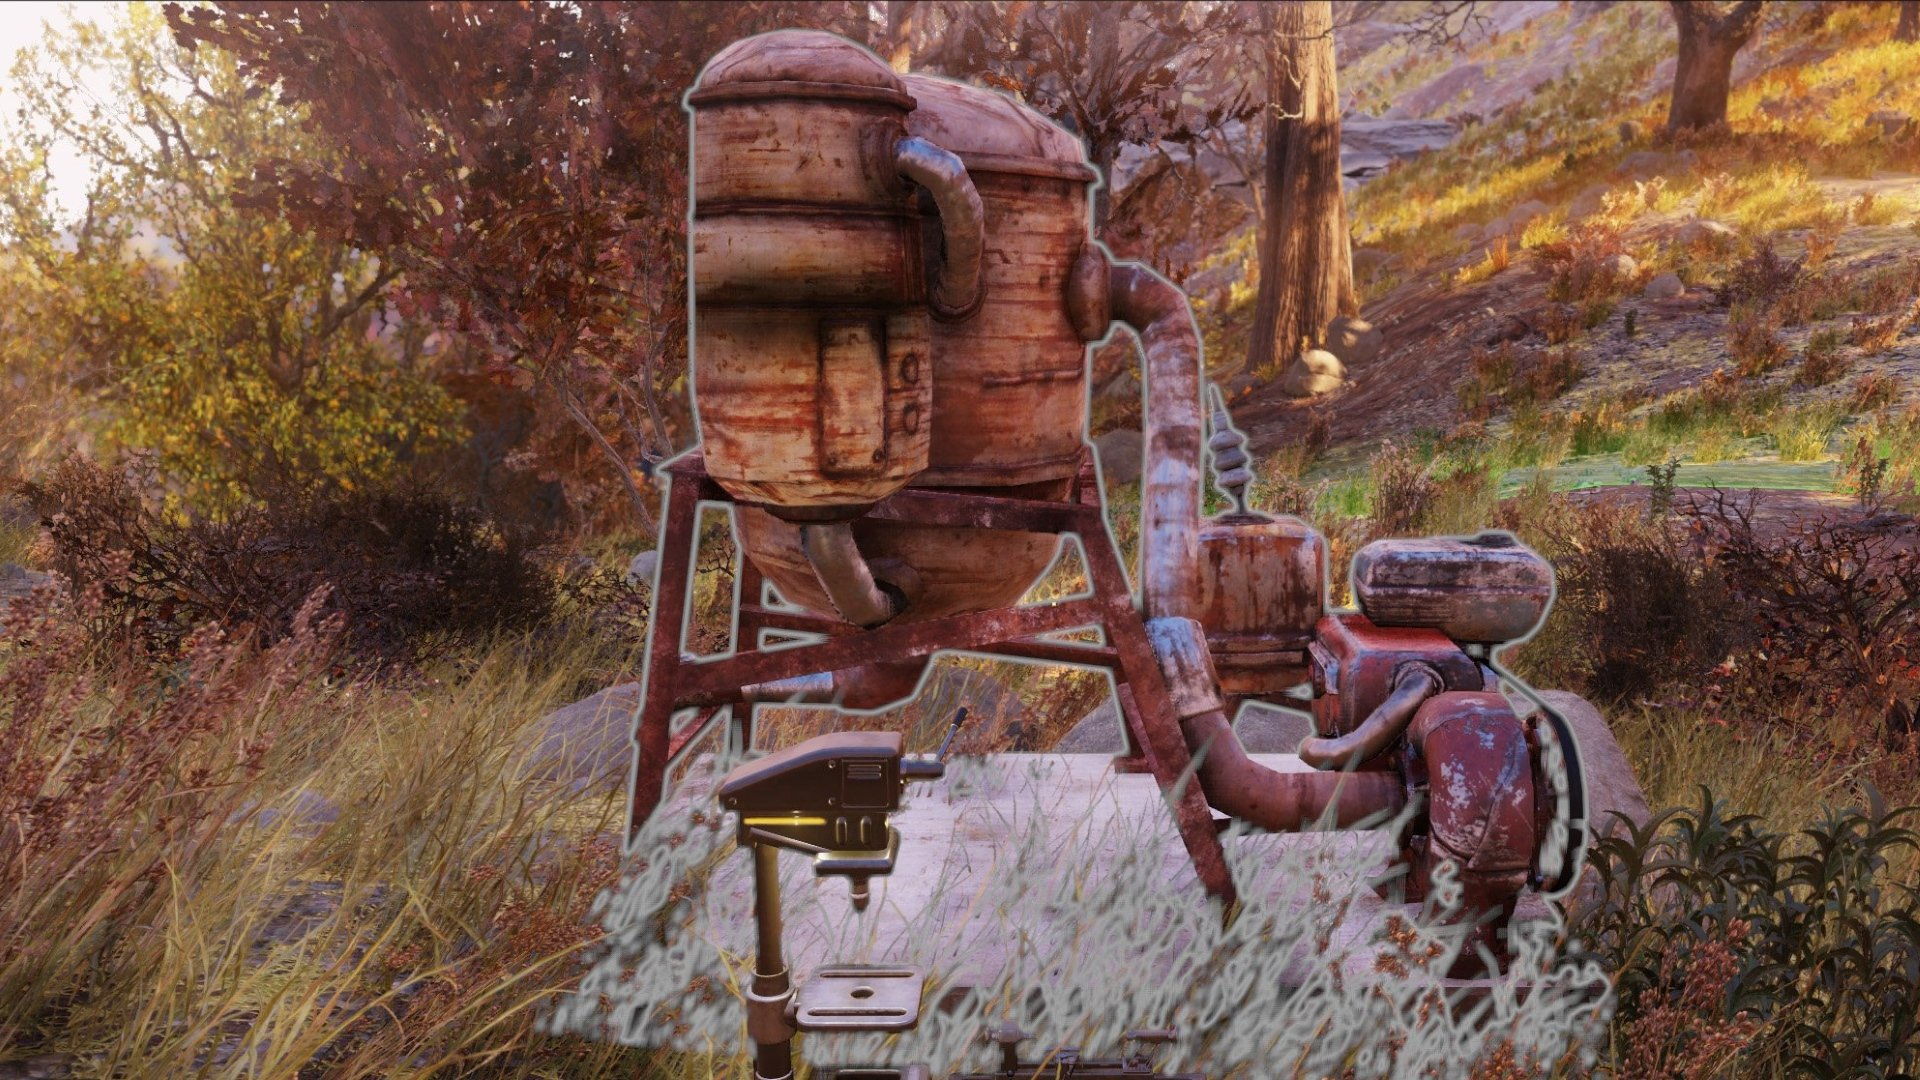 How to make Purified Water in Fallout 76 | AllGamers